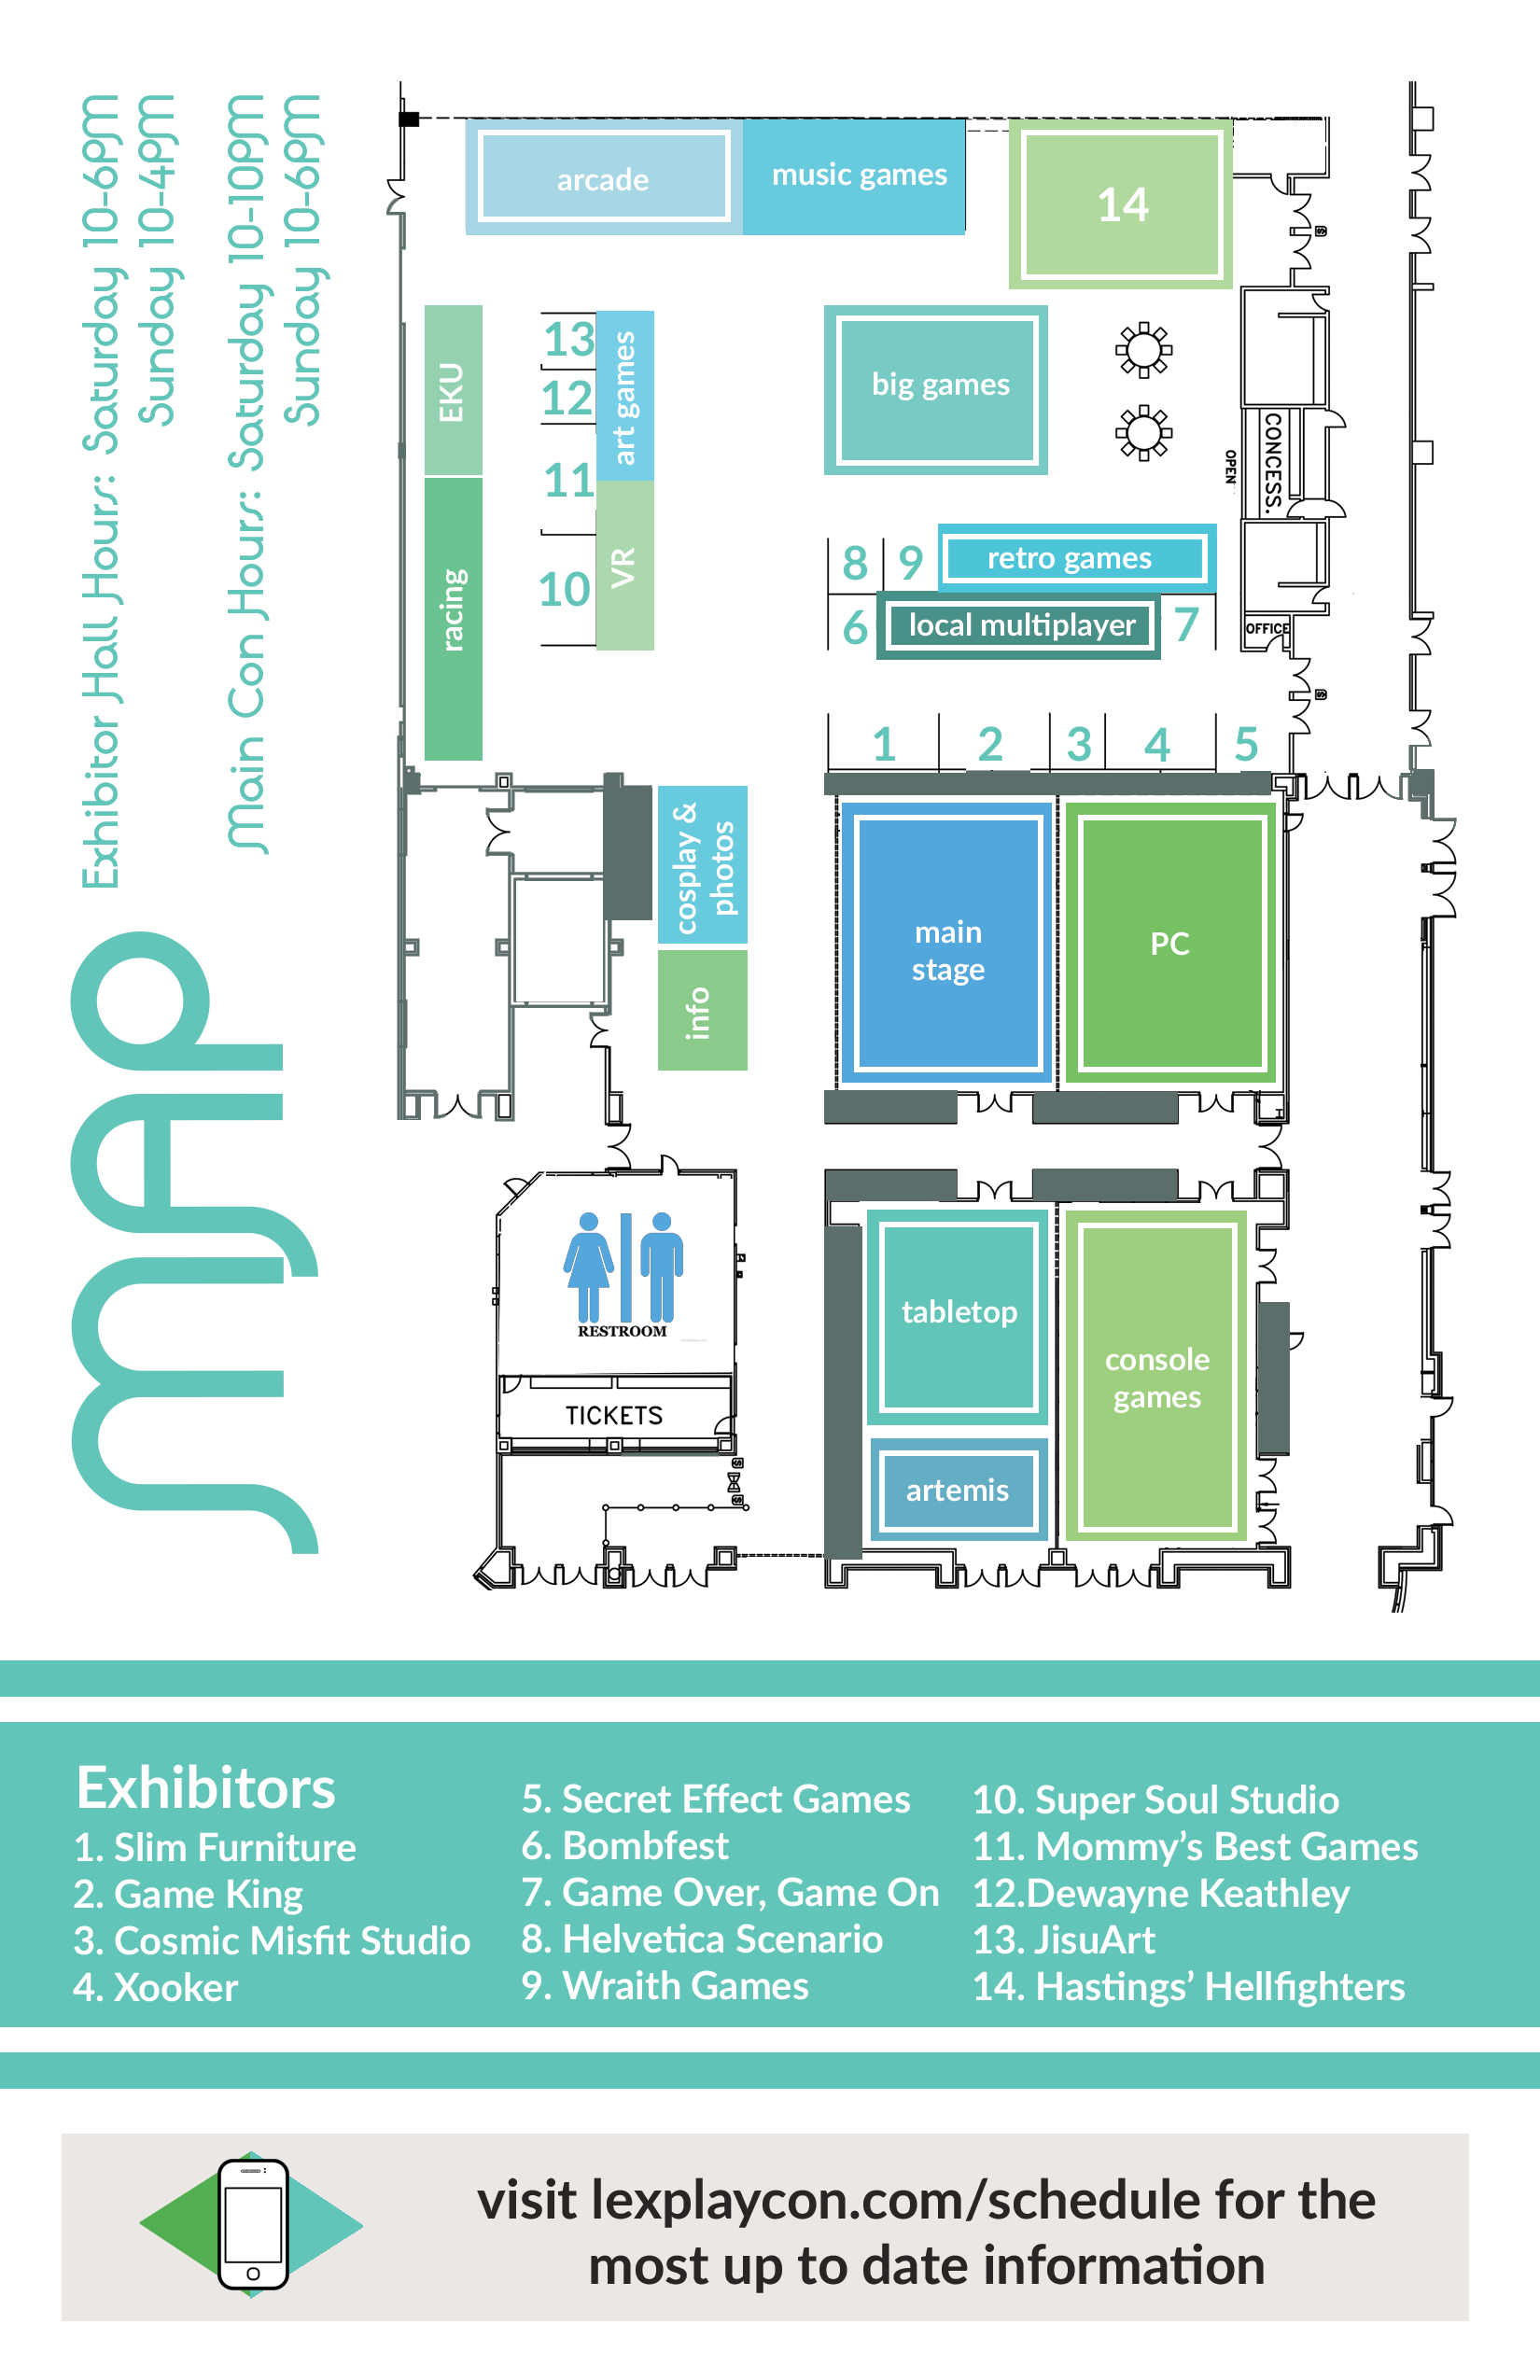 A full map of LexPlay, with green and blue boxes to point out which spaces. A version of this will be available on sight, and anyone who needs help with it can talk to information in the central hallway past the ticket booth.